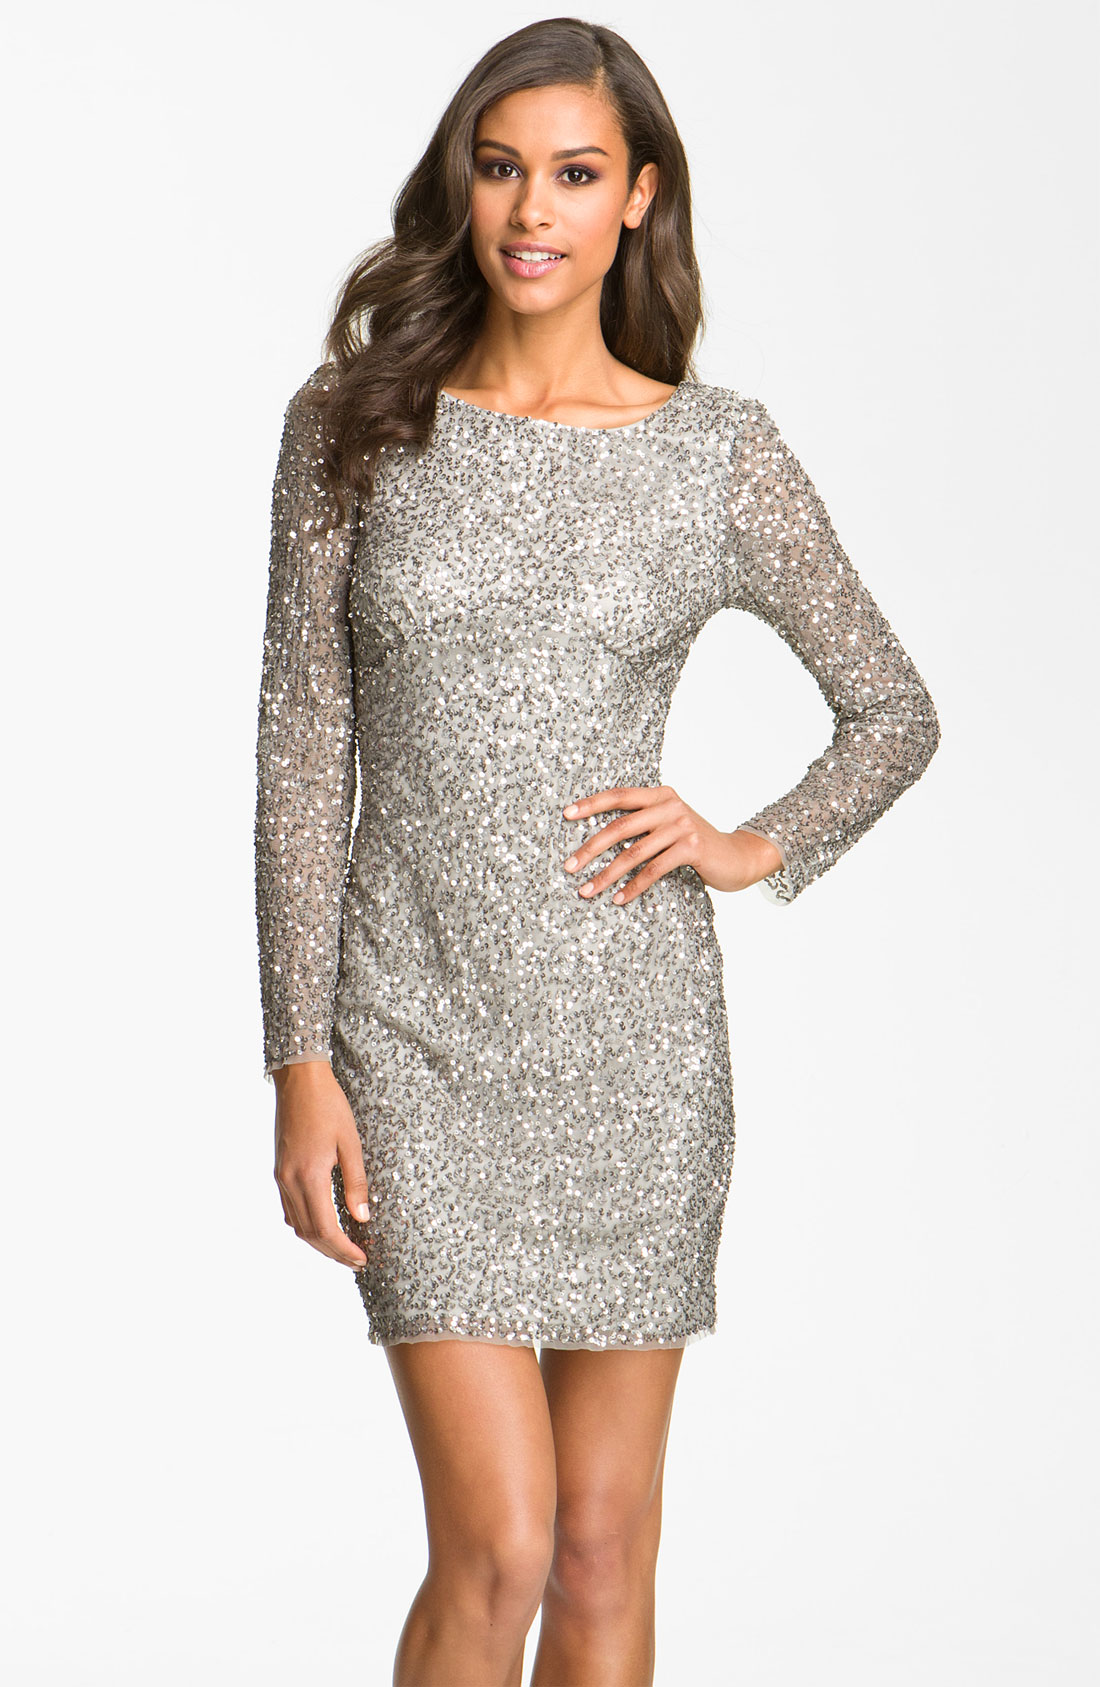 794aa53f6f49 Long sleeve metallic silver sequin dress